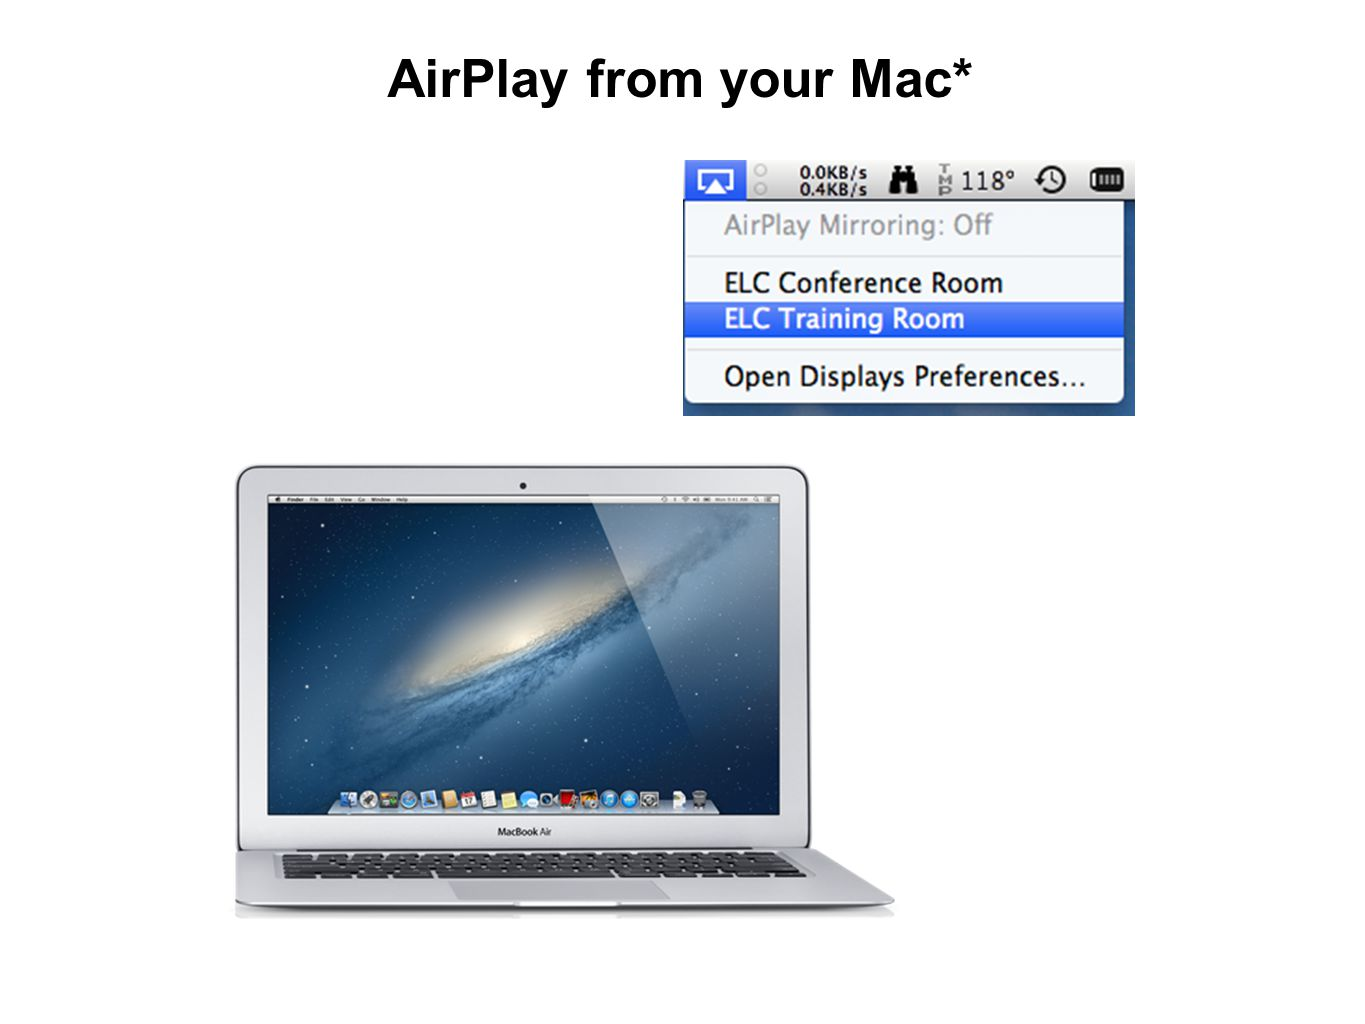 AirPlay from your Mac*